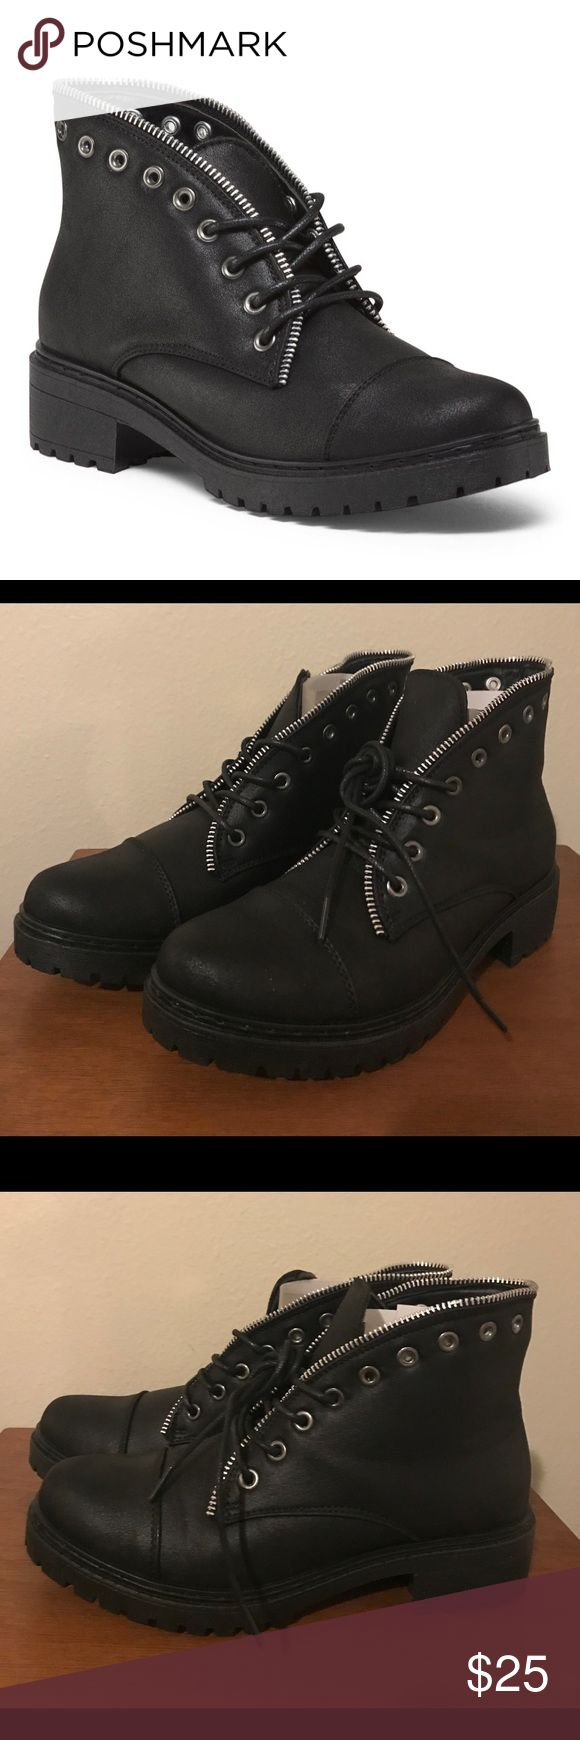 Combat boots Black Qupid combat boots.  New with box  Size available: 7, 8, 9 Qupid Shoes Combat & Moto Boots